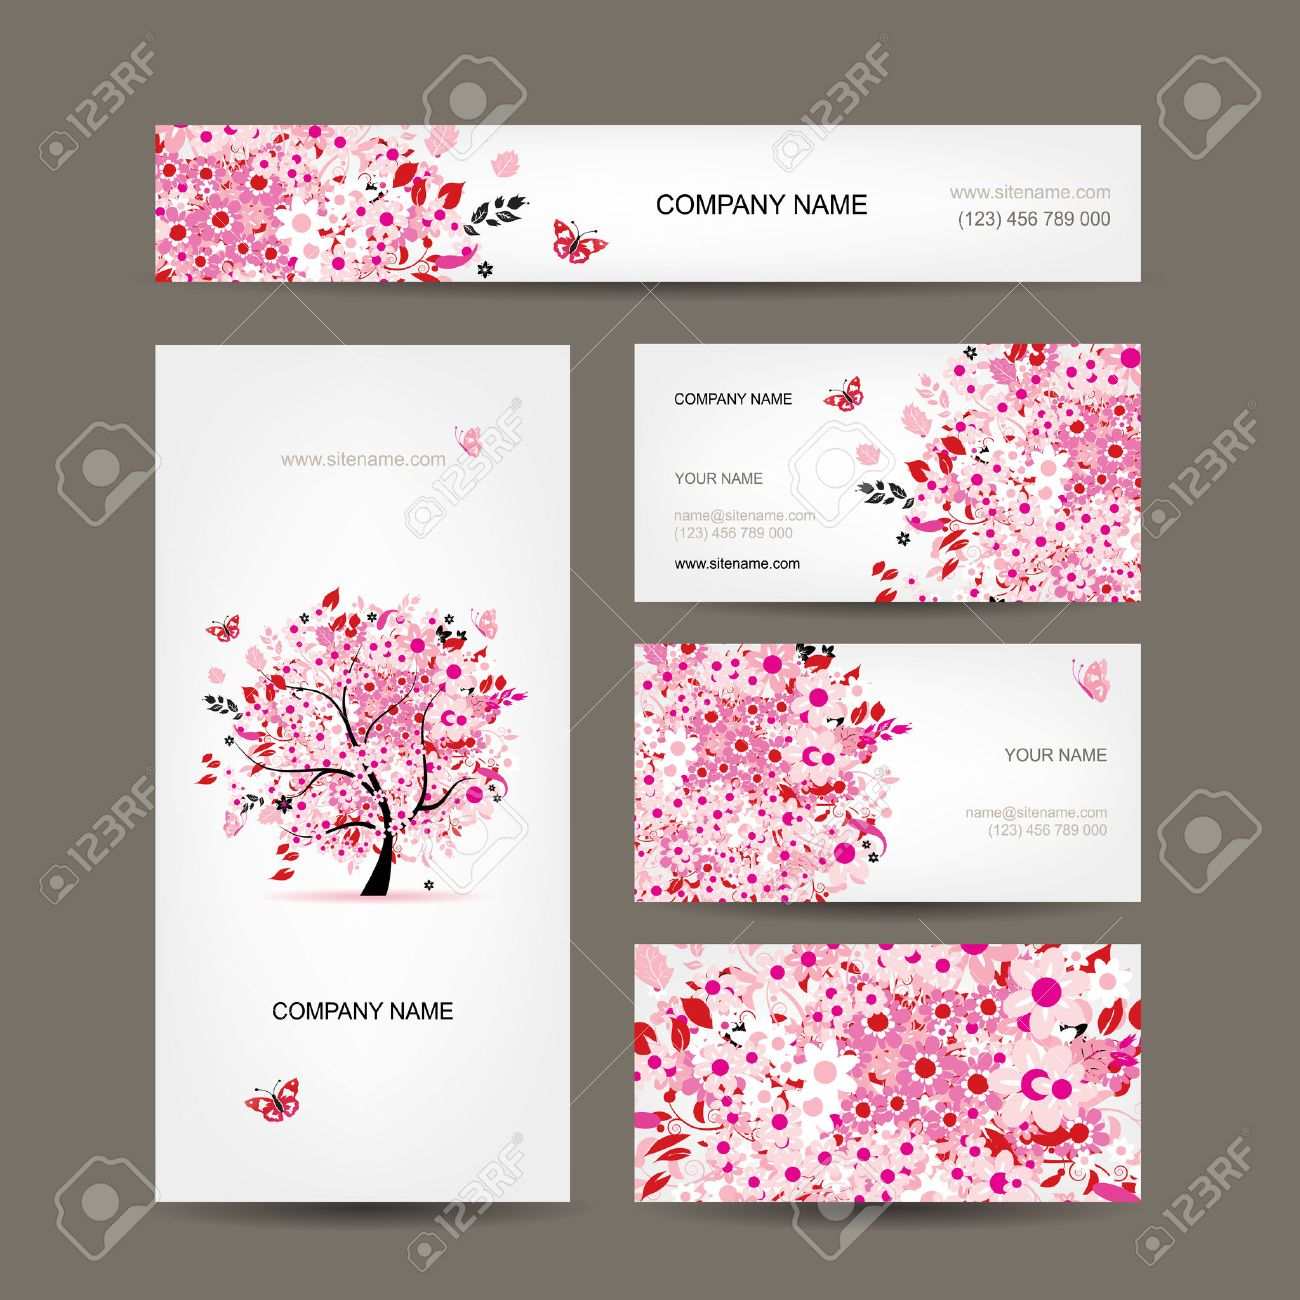 Business Cards Design With Floral Tree Pink Royalty Free Cliparts ...